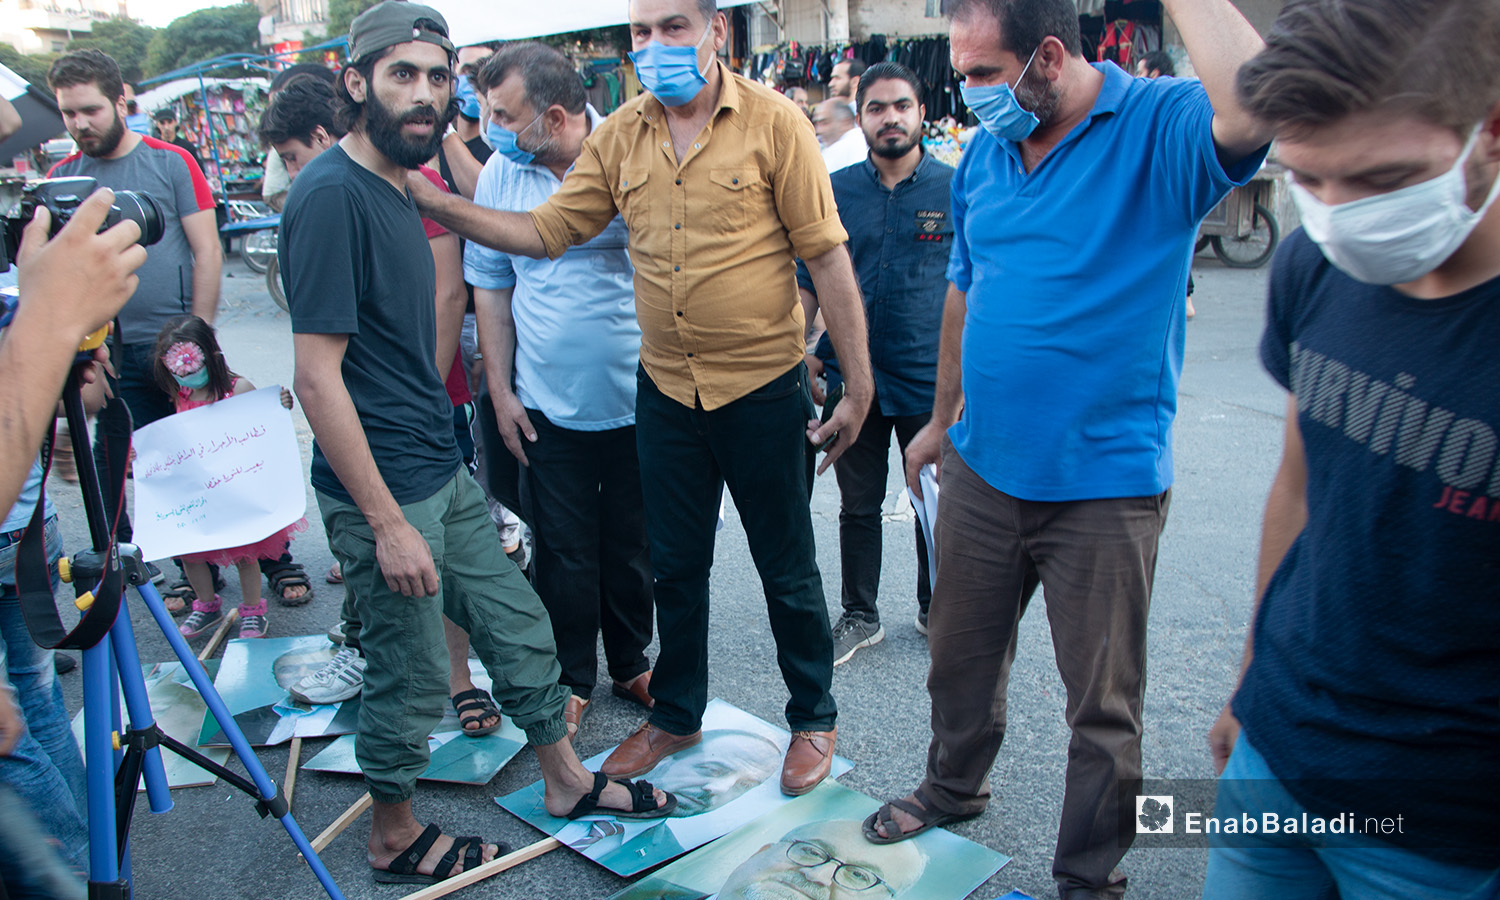 A protest stand in Idlib province against the National Coalition of Syrian Revolution and Opposition Forces and al-Assad's gangs – 17 July 2020 (Enab Baladi / Anas al-Khouli)